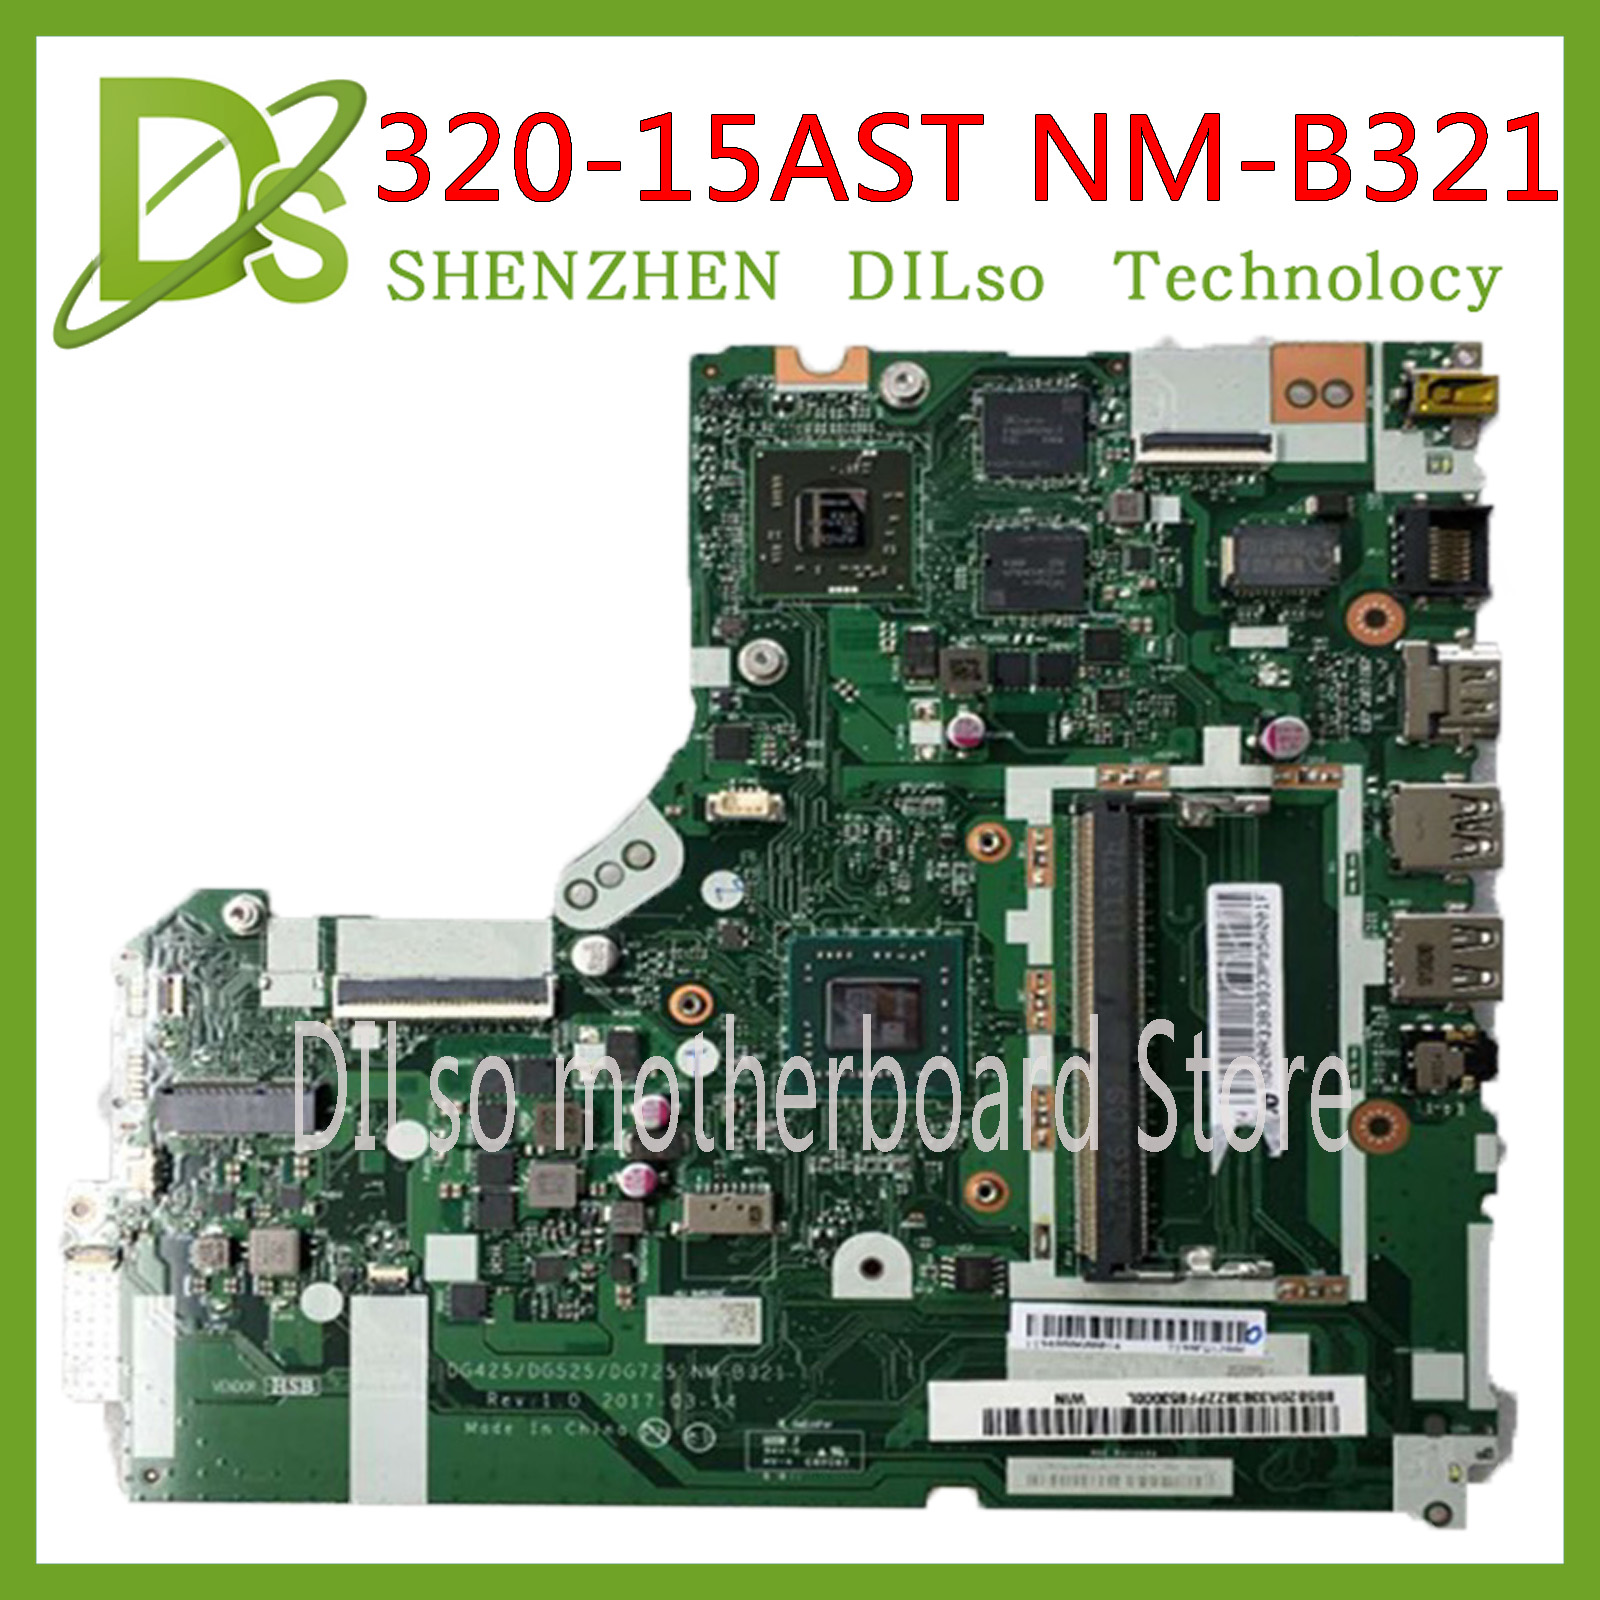 KEFU NM-B321 <font><b>motherboard</b></font> for <font><b>Lenovo</b></font> <font><b>320</b></font>-15ACL <font><b>320</b></font>-15AST <font><b>motherboard</b></font> DG425 DG525 DG725 NM-B321 AMD CPU Test OK original work image